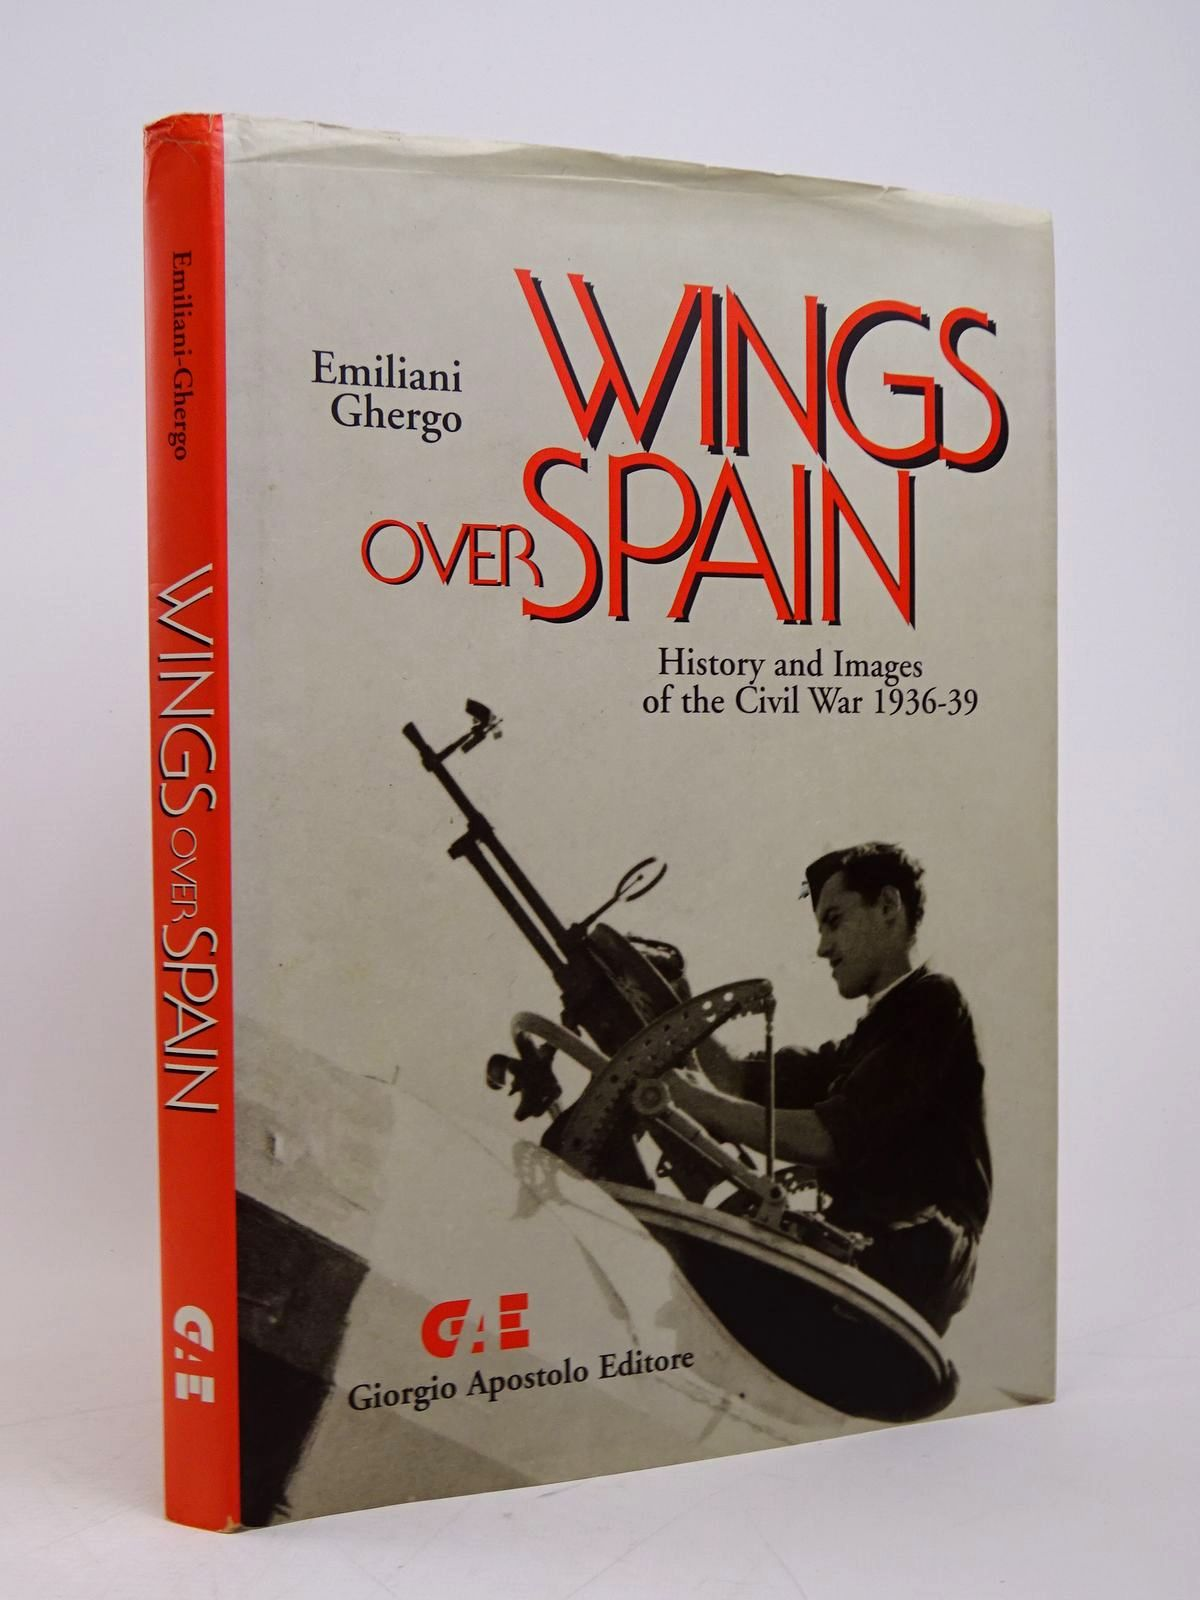 Photo of WINGS OVER SPAIN: HISTORY AND IMAGES OF THE CIVIL WAR 1936-39 written by Emiliani, Angelo<br />Ghergo, Giuseppe F. published by Giorgio Apostolo Editore (STOCK CODE: 1817811)  for sale by Stella & Rose's Books